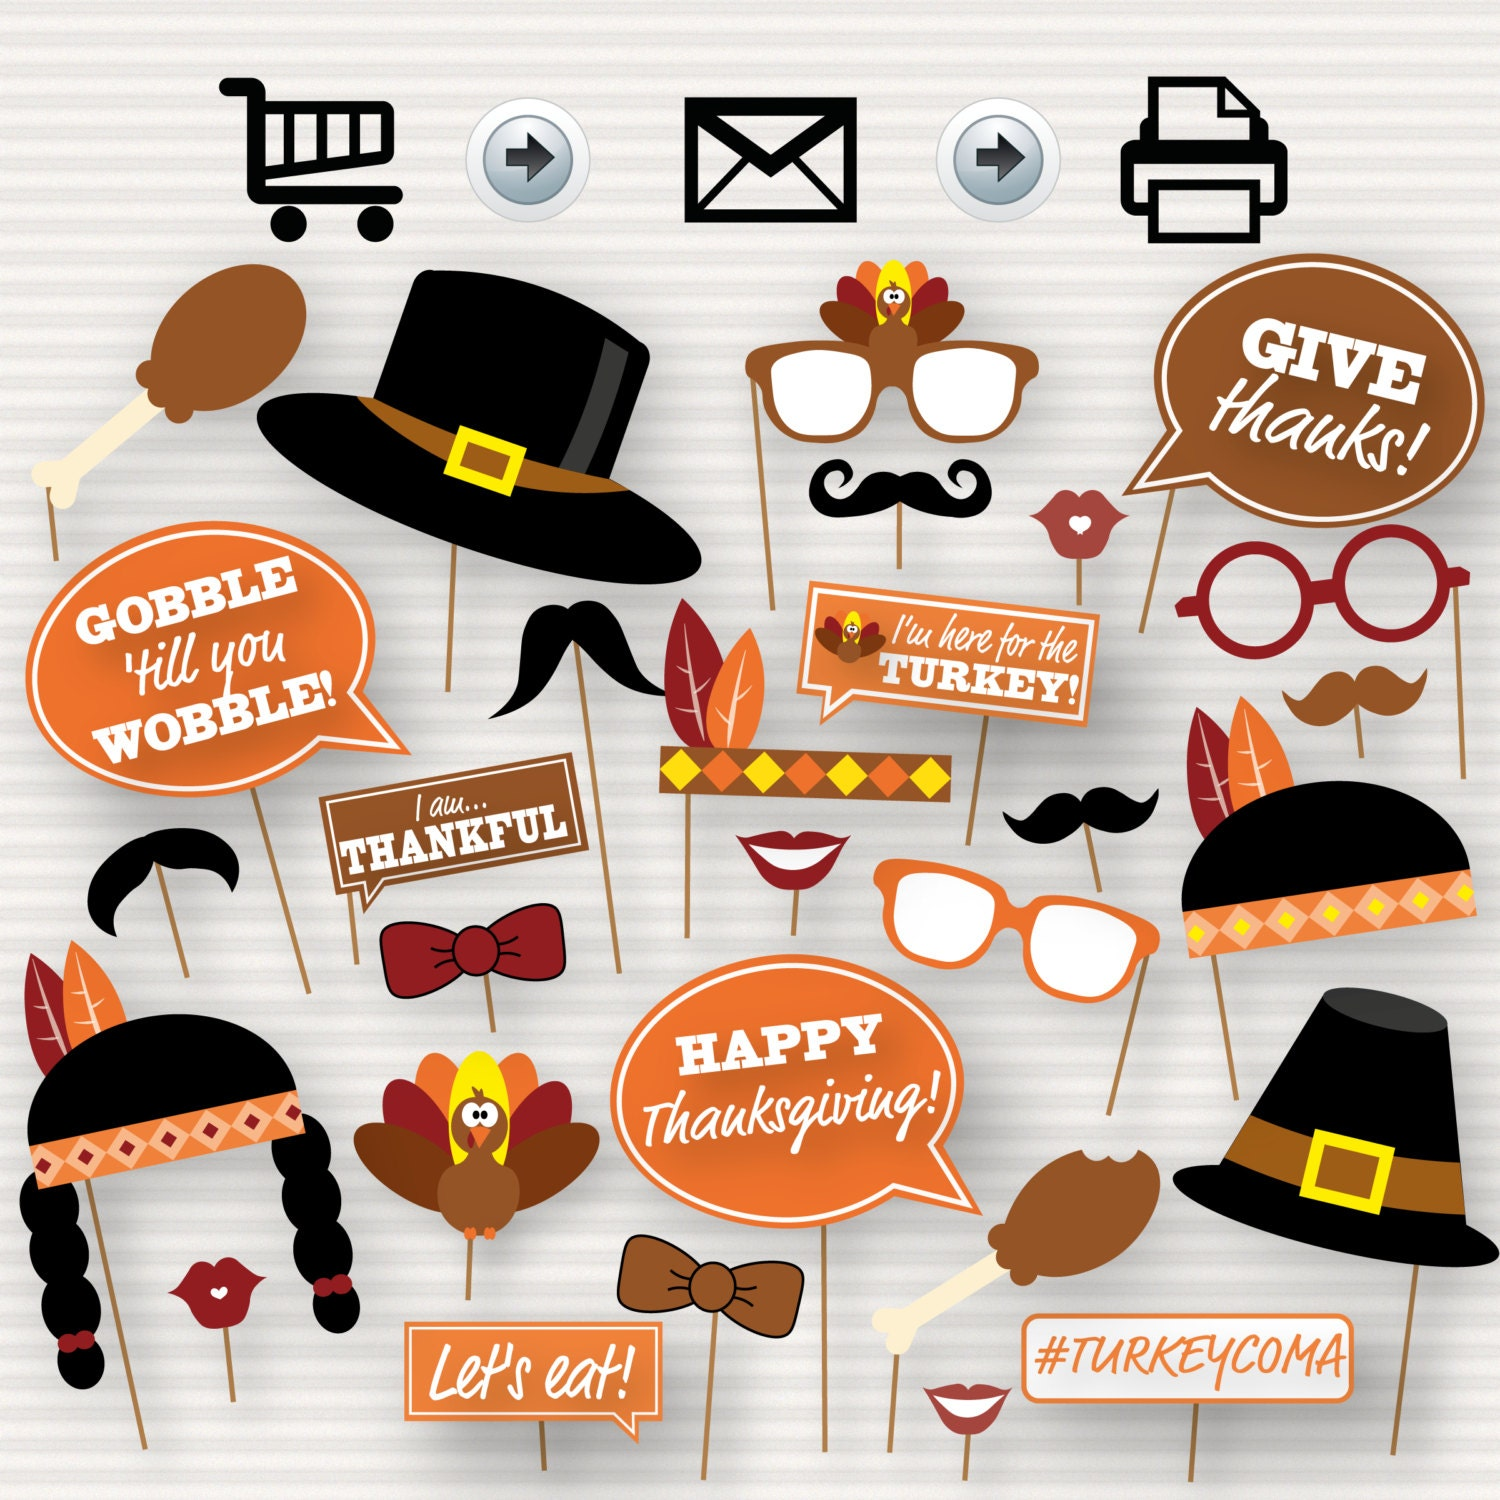 Christmas Party Photo Booth Ideas Part - 31: Thanksgiving Party Printable Photo Booth Props - Glasses, Hats, Ties, Lips,  Mustaches